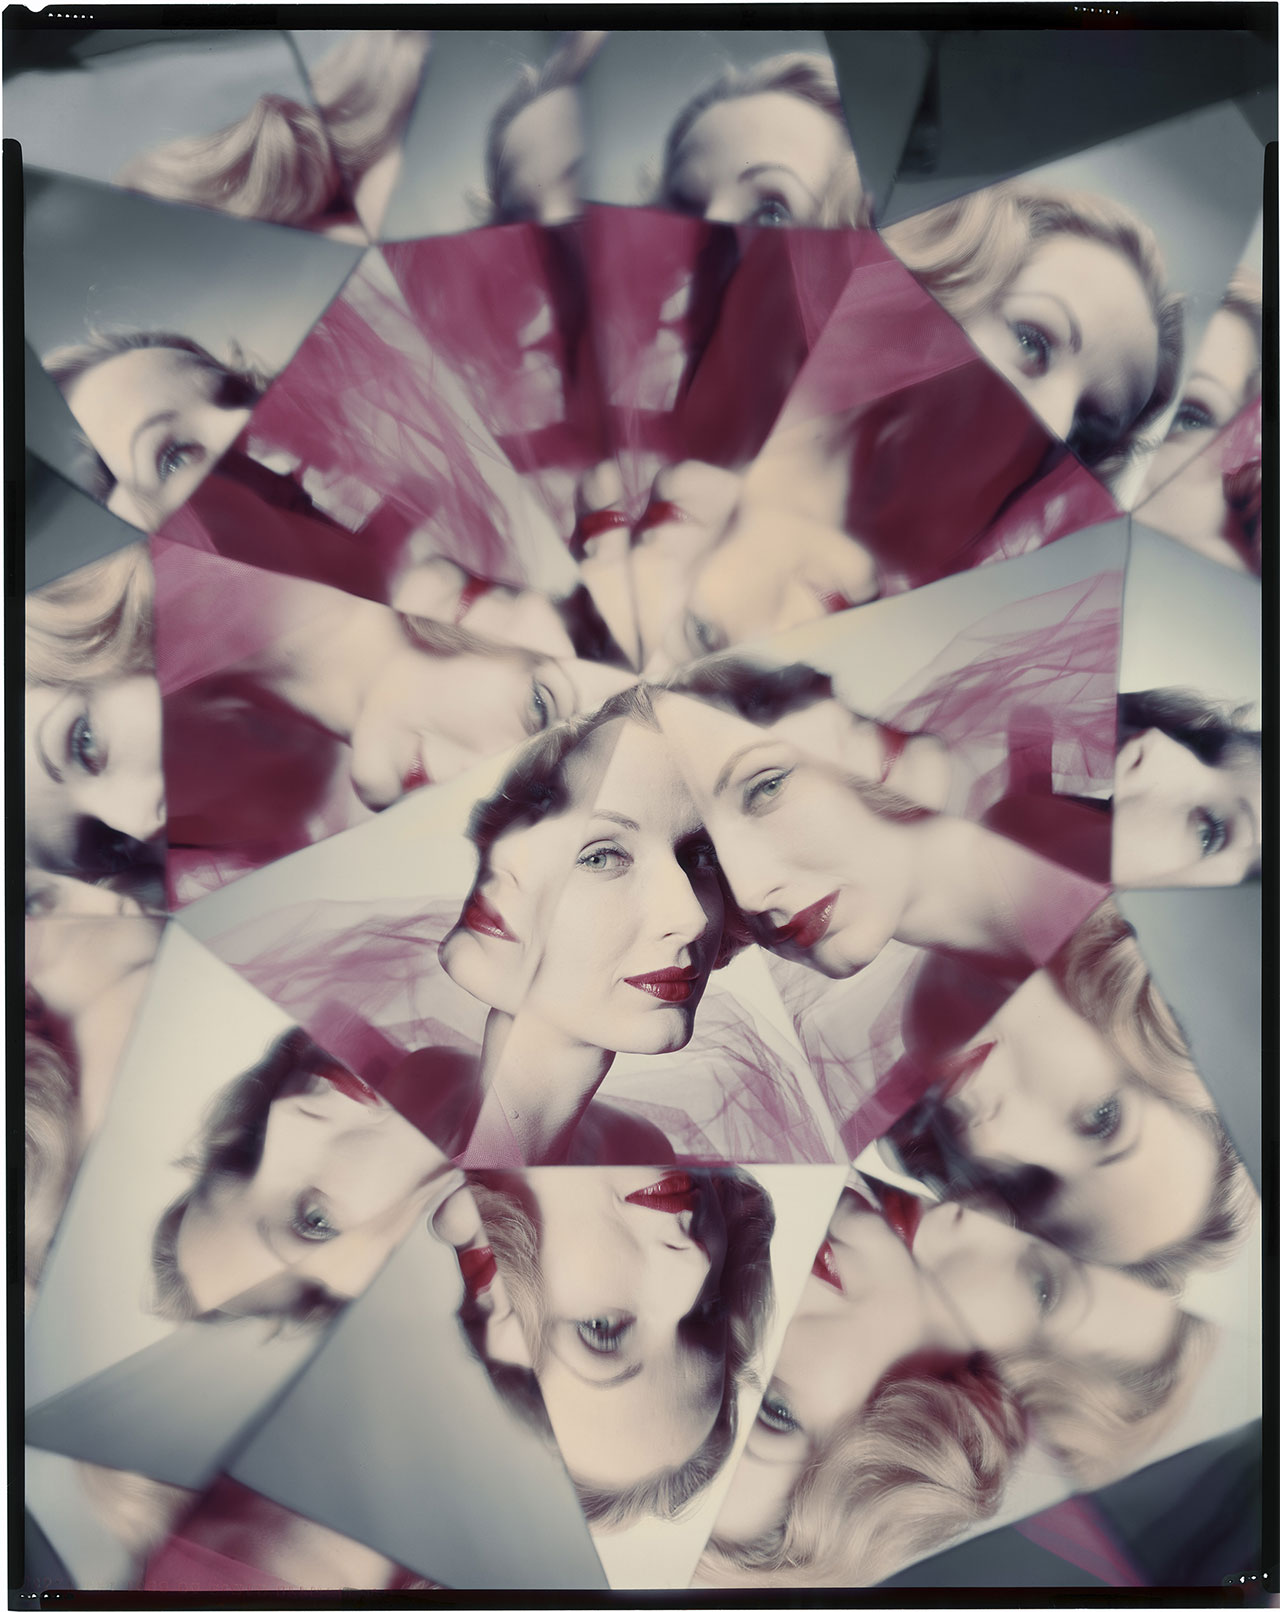 Kaleidoscope from 1960 © The Estate of Erwin Blumenfeld.